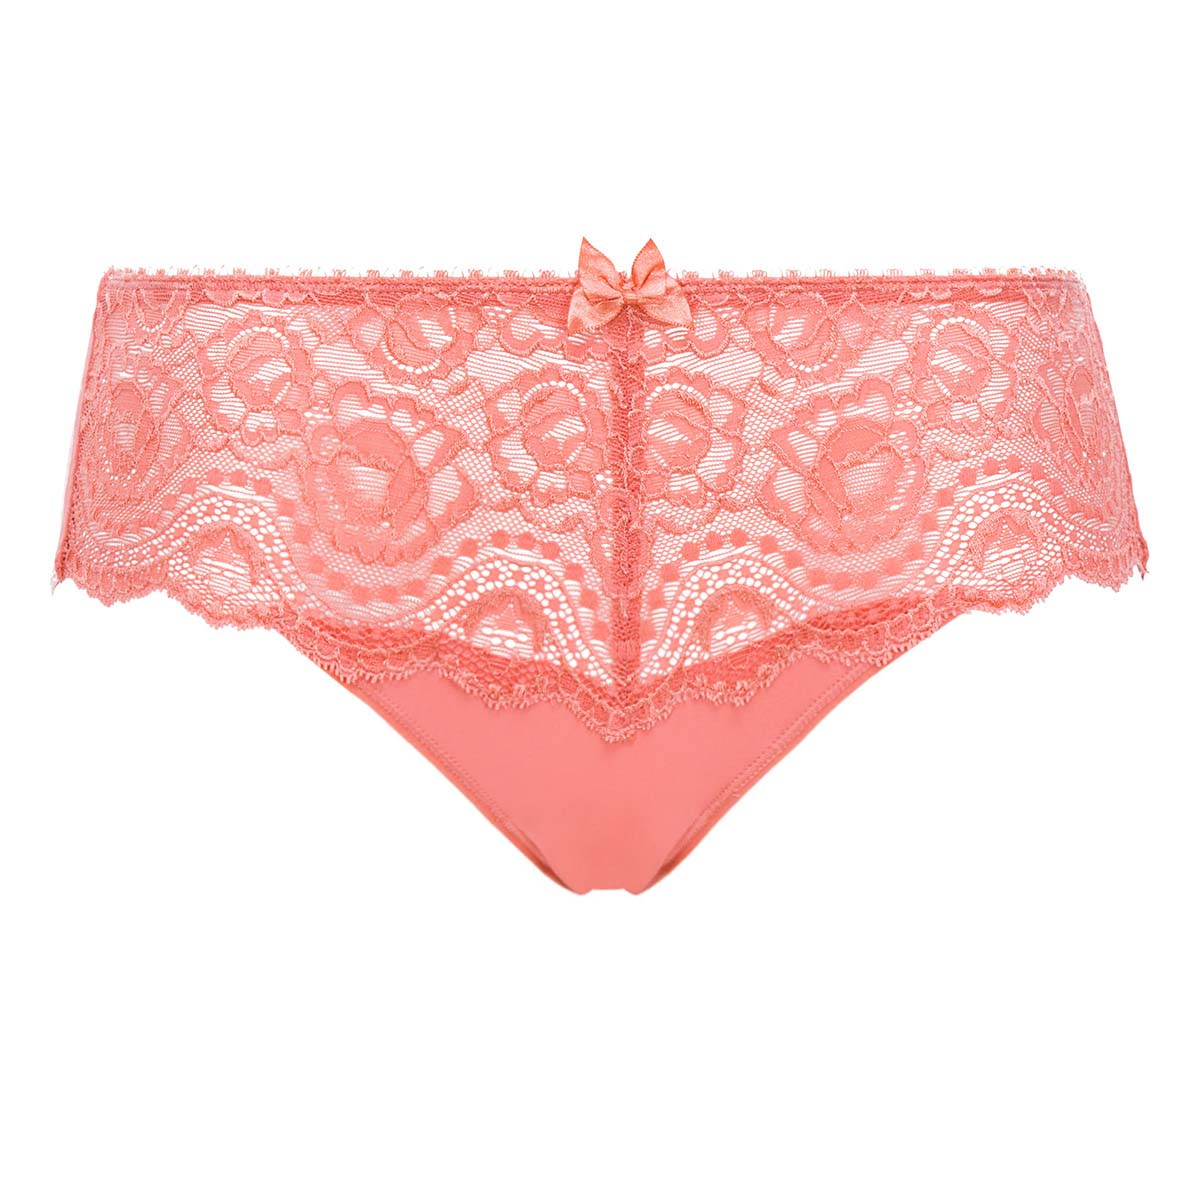 Culotte dentelle Midi orange cannelle - Flower Elegance, , PLAYTEX